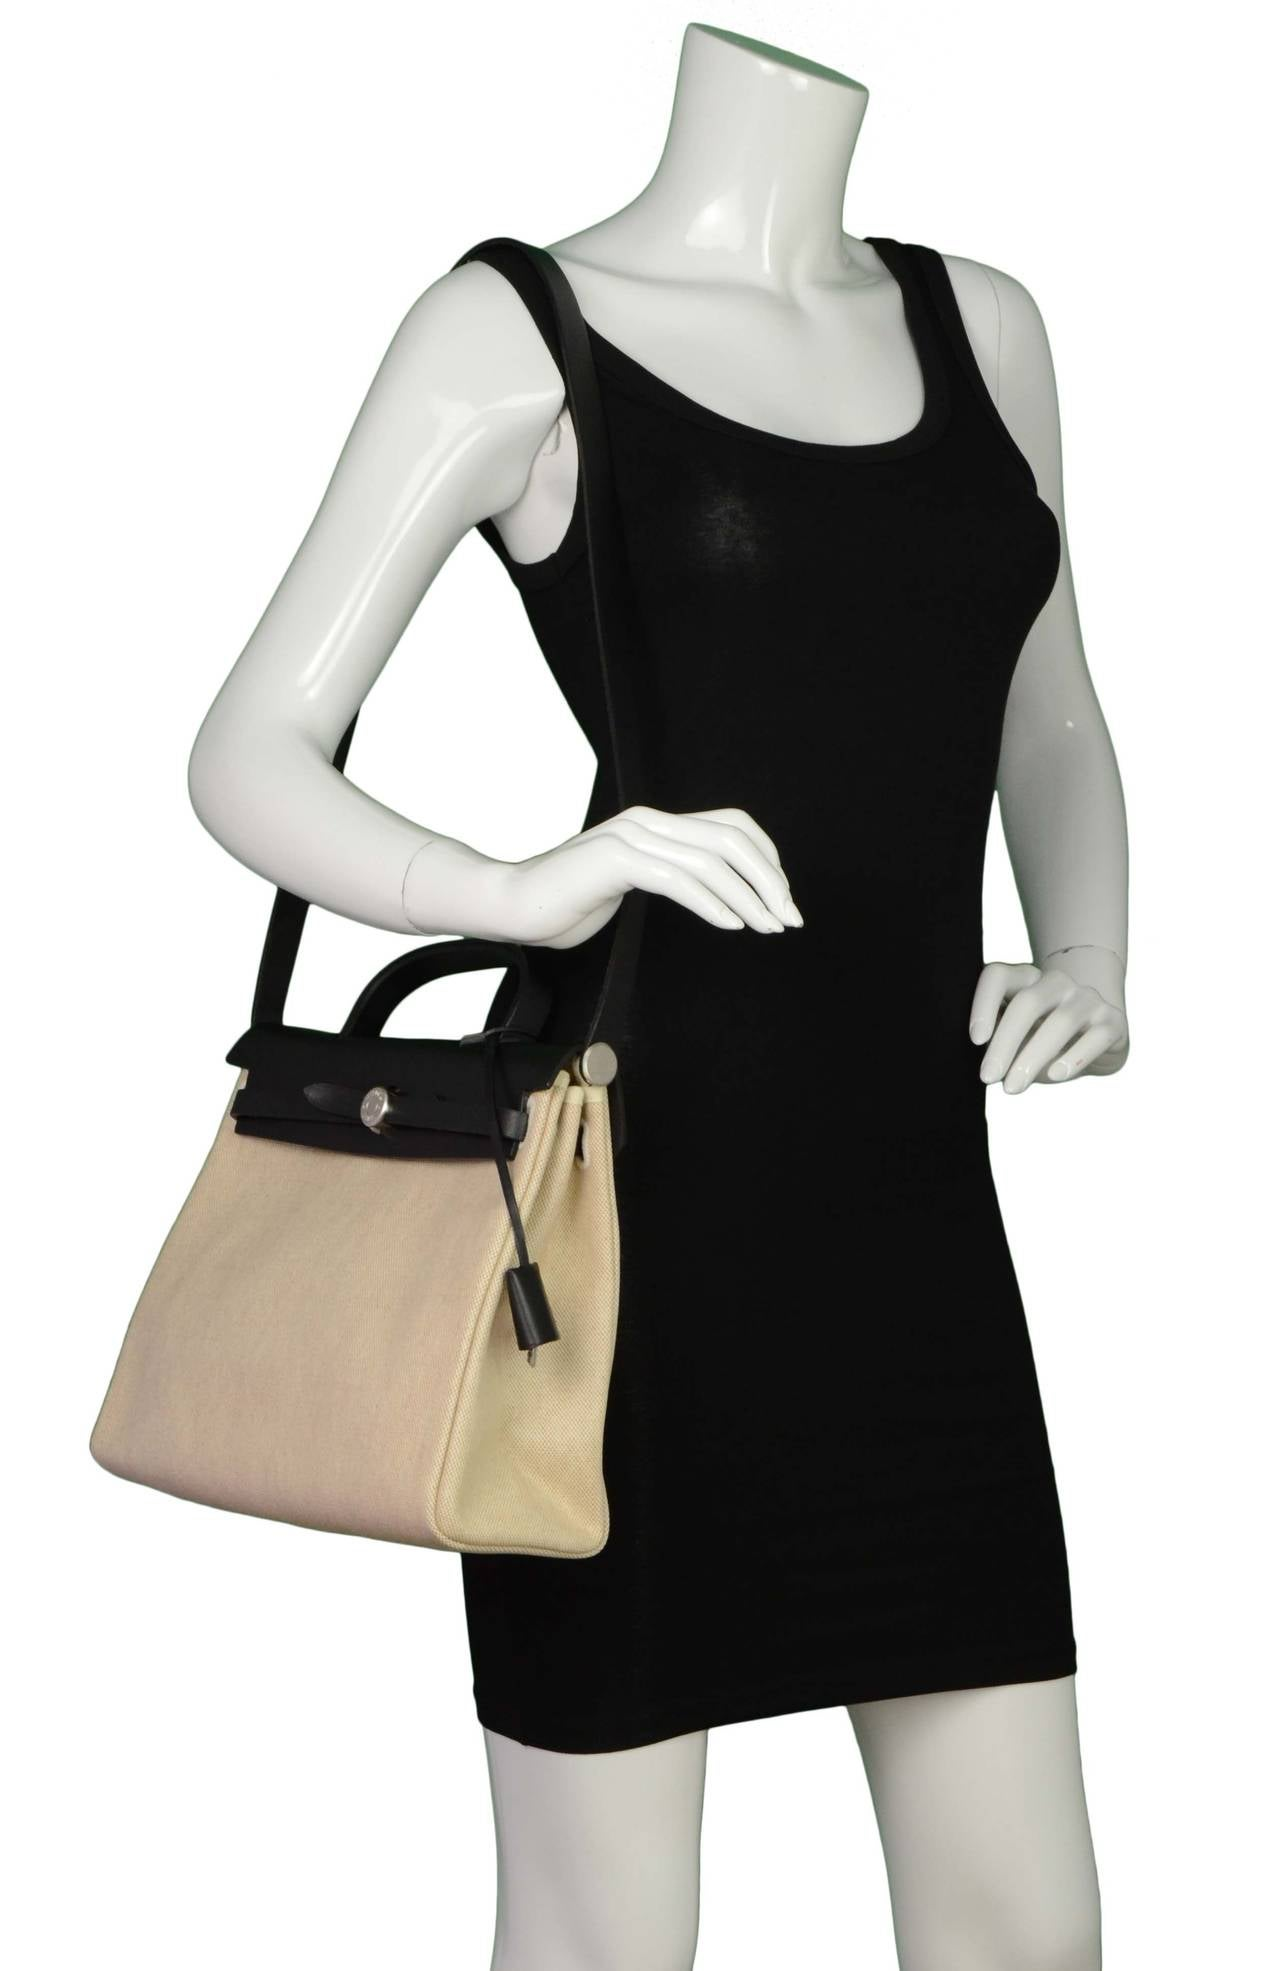 Hermes Black and Beige Canvas \u0026quot;Her\u0026quot; Bag PHW at 1stdibs